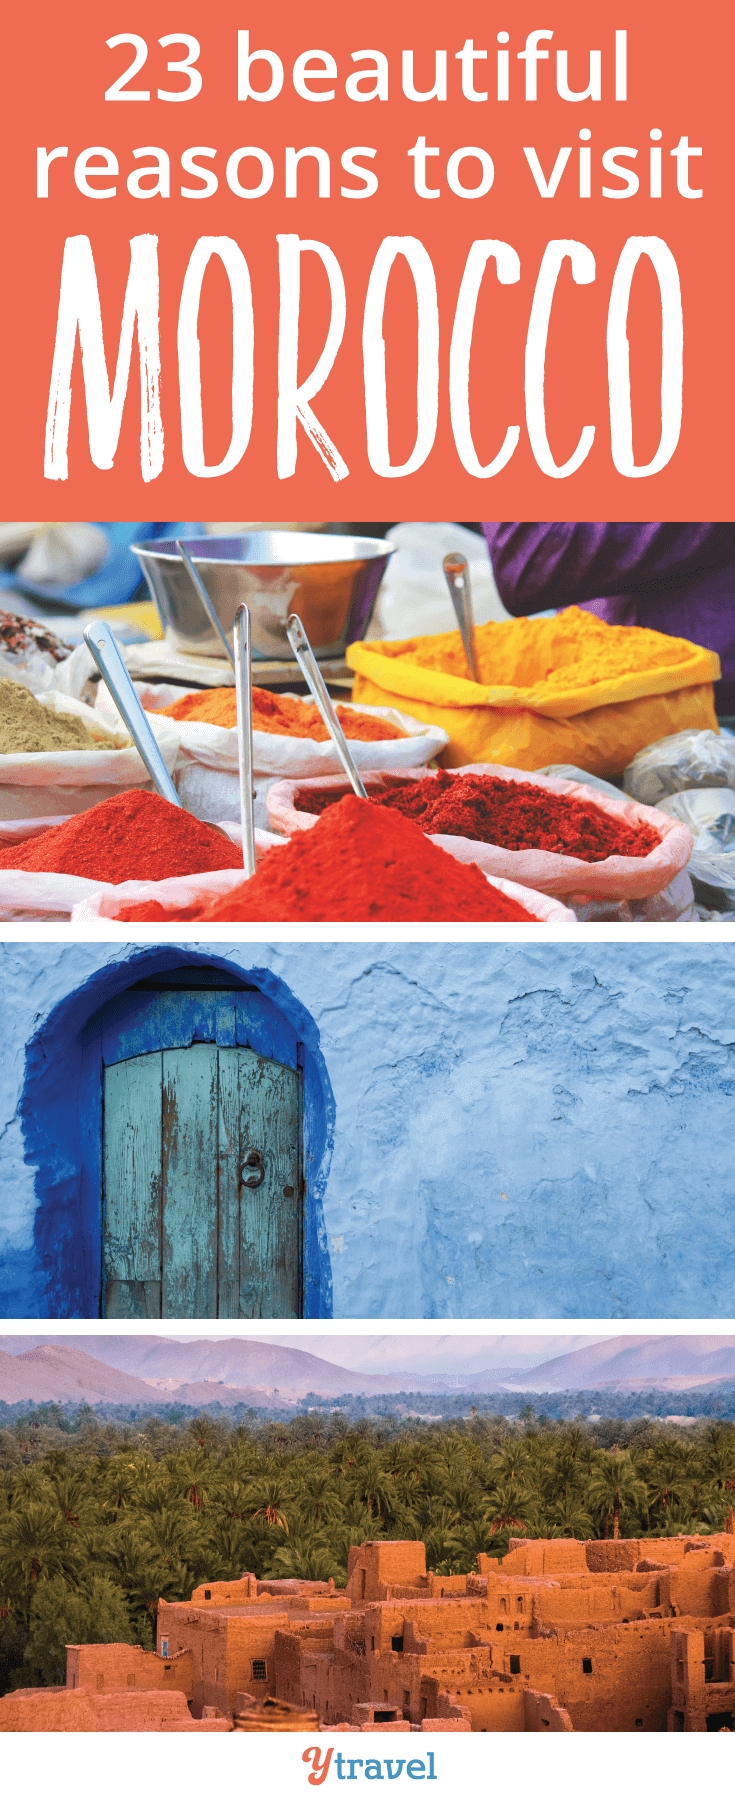 Thinking about a trip to Morocco soon? Check out these 23 beautiful reasons to visit Morocco.